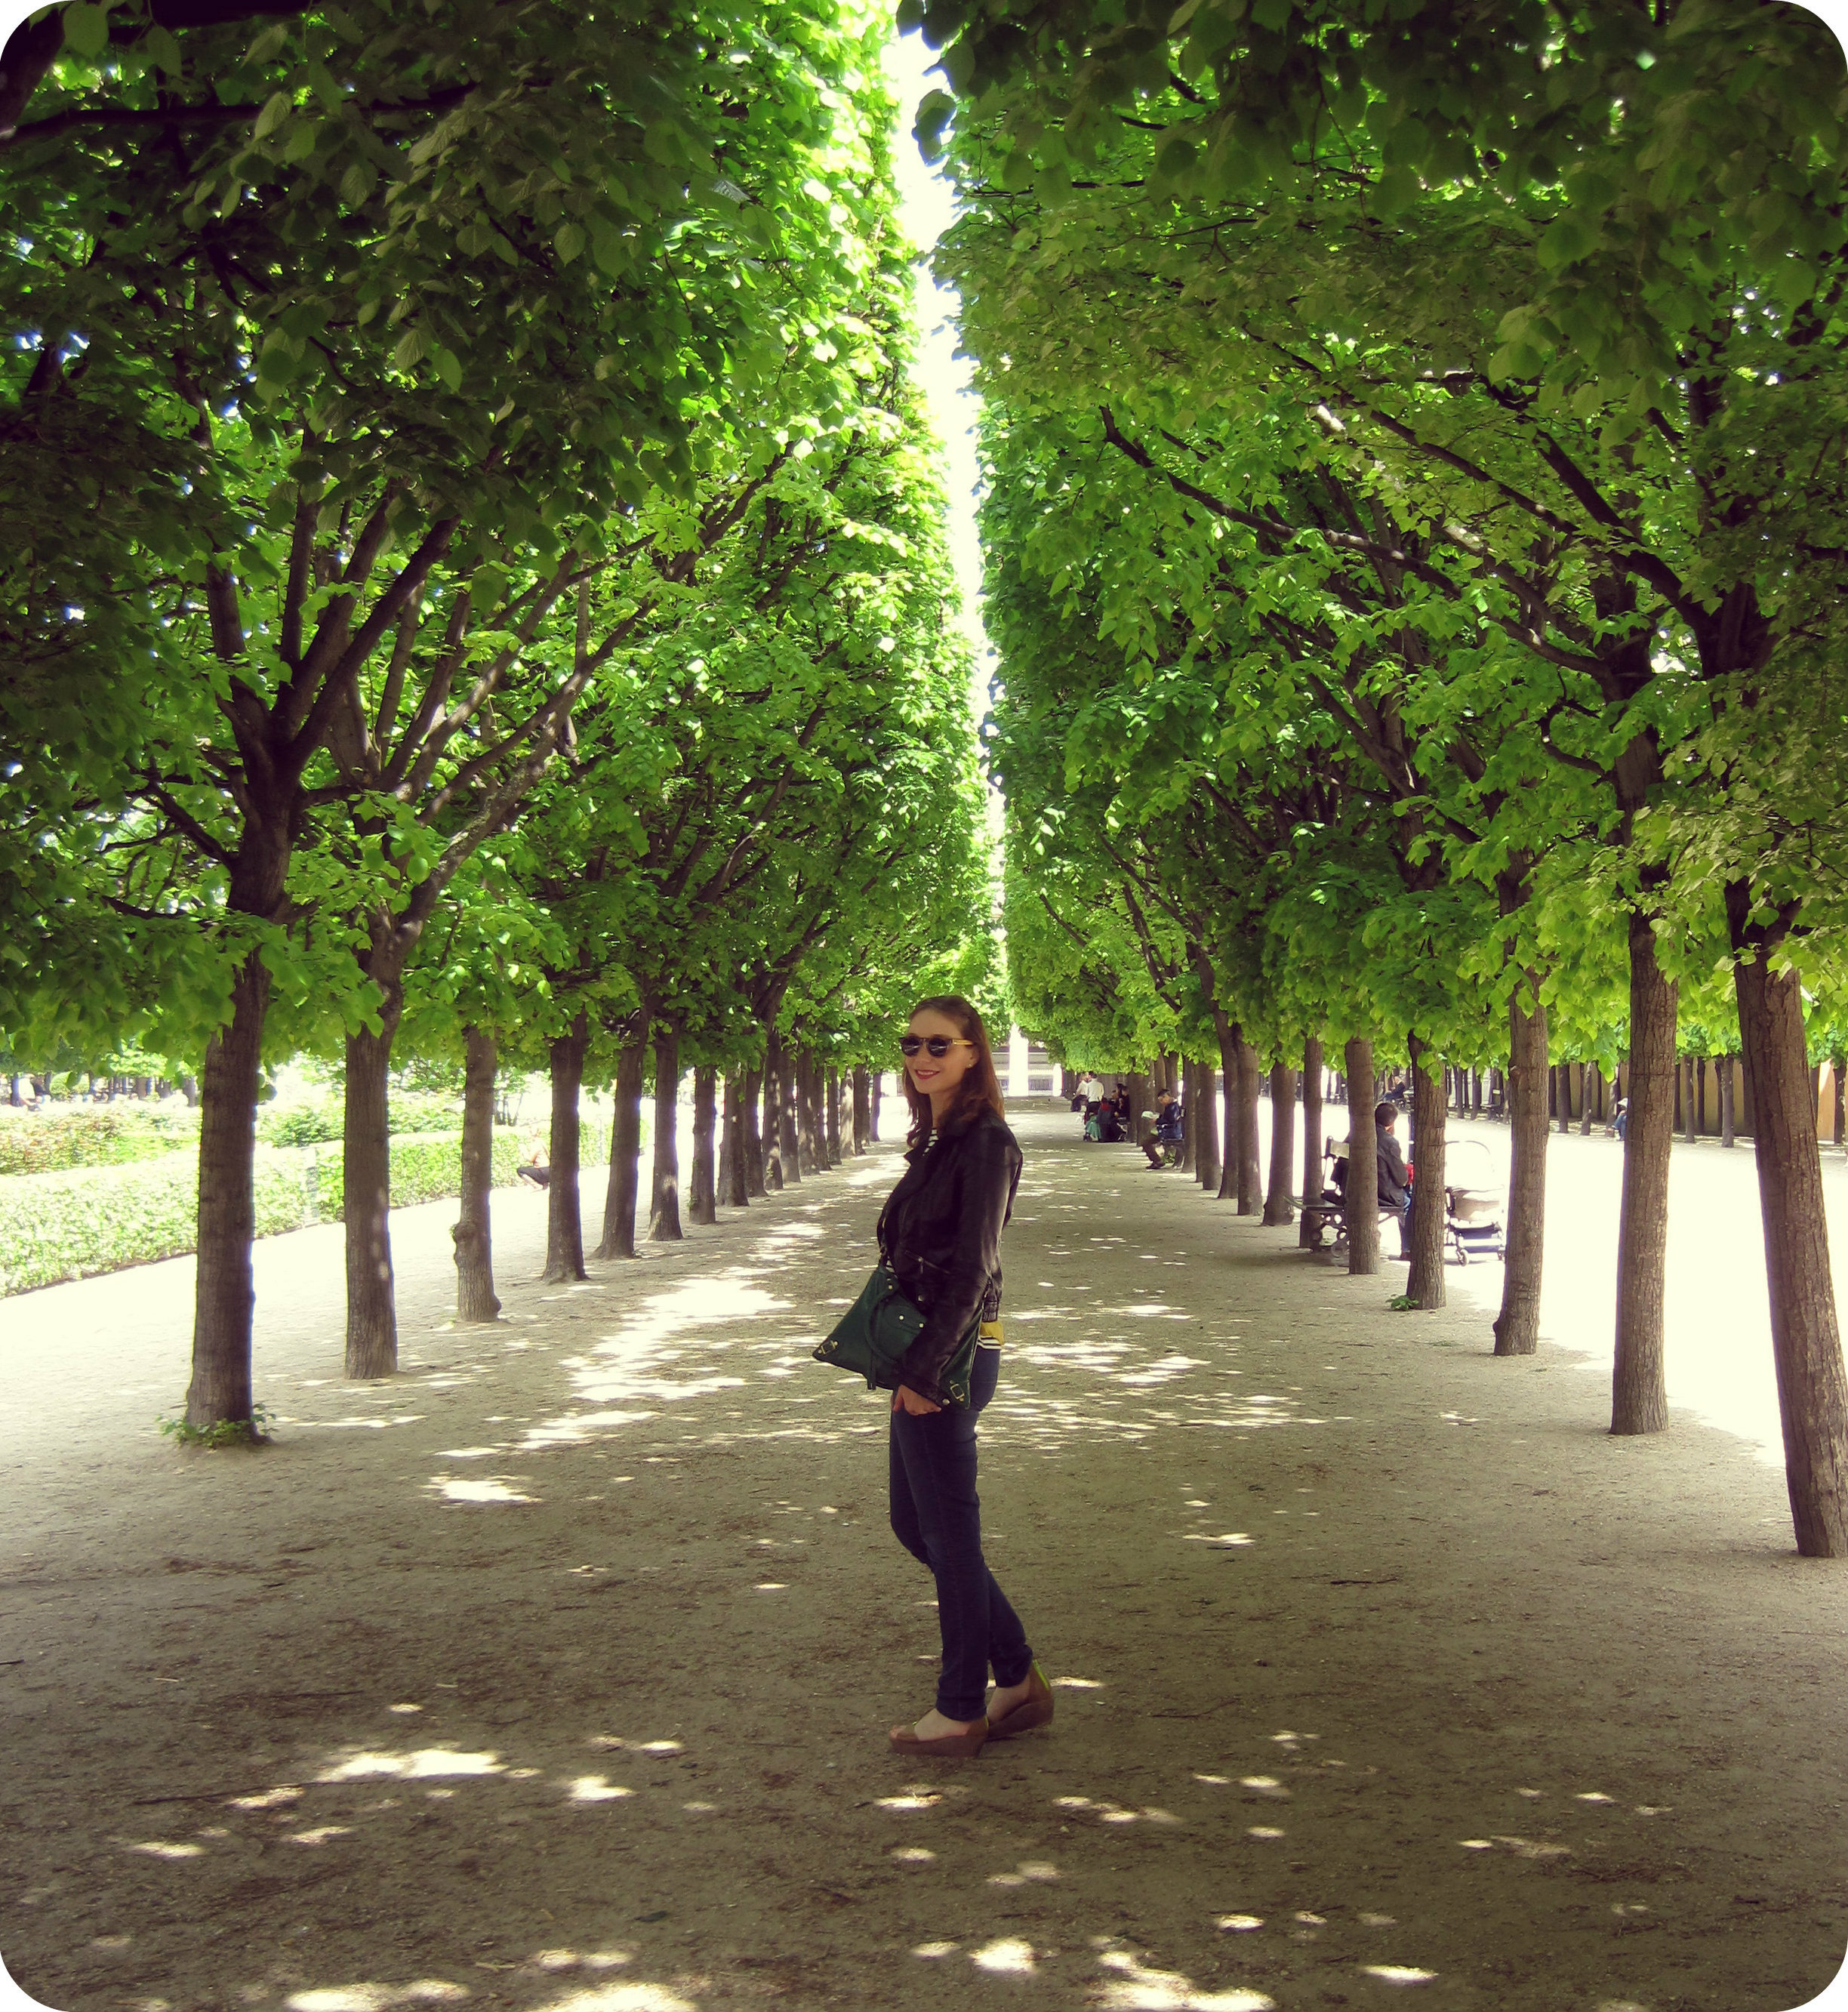 Les jardins de paris palais royal a beautiful journey for Jardin royal